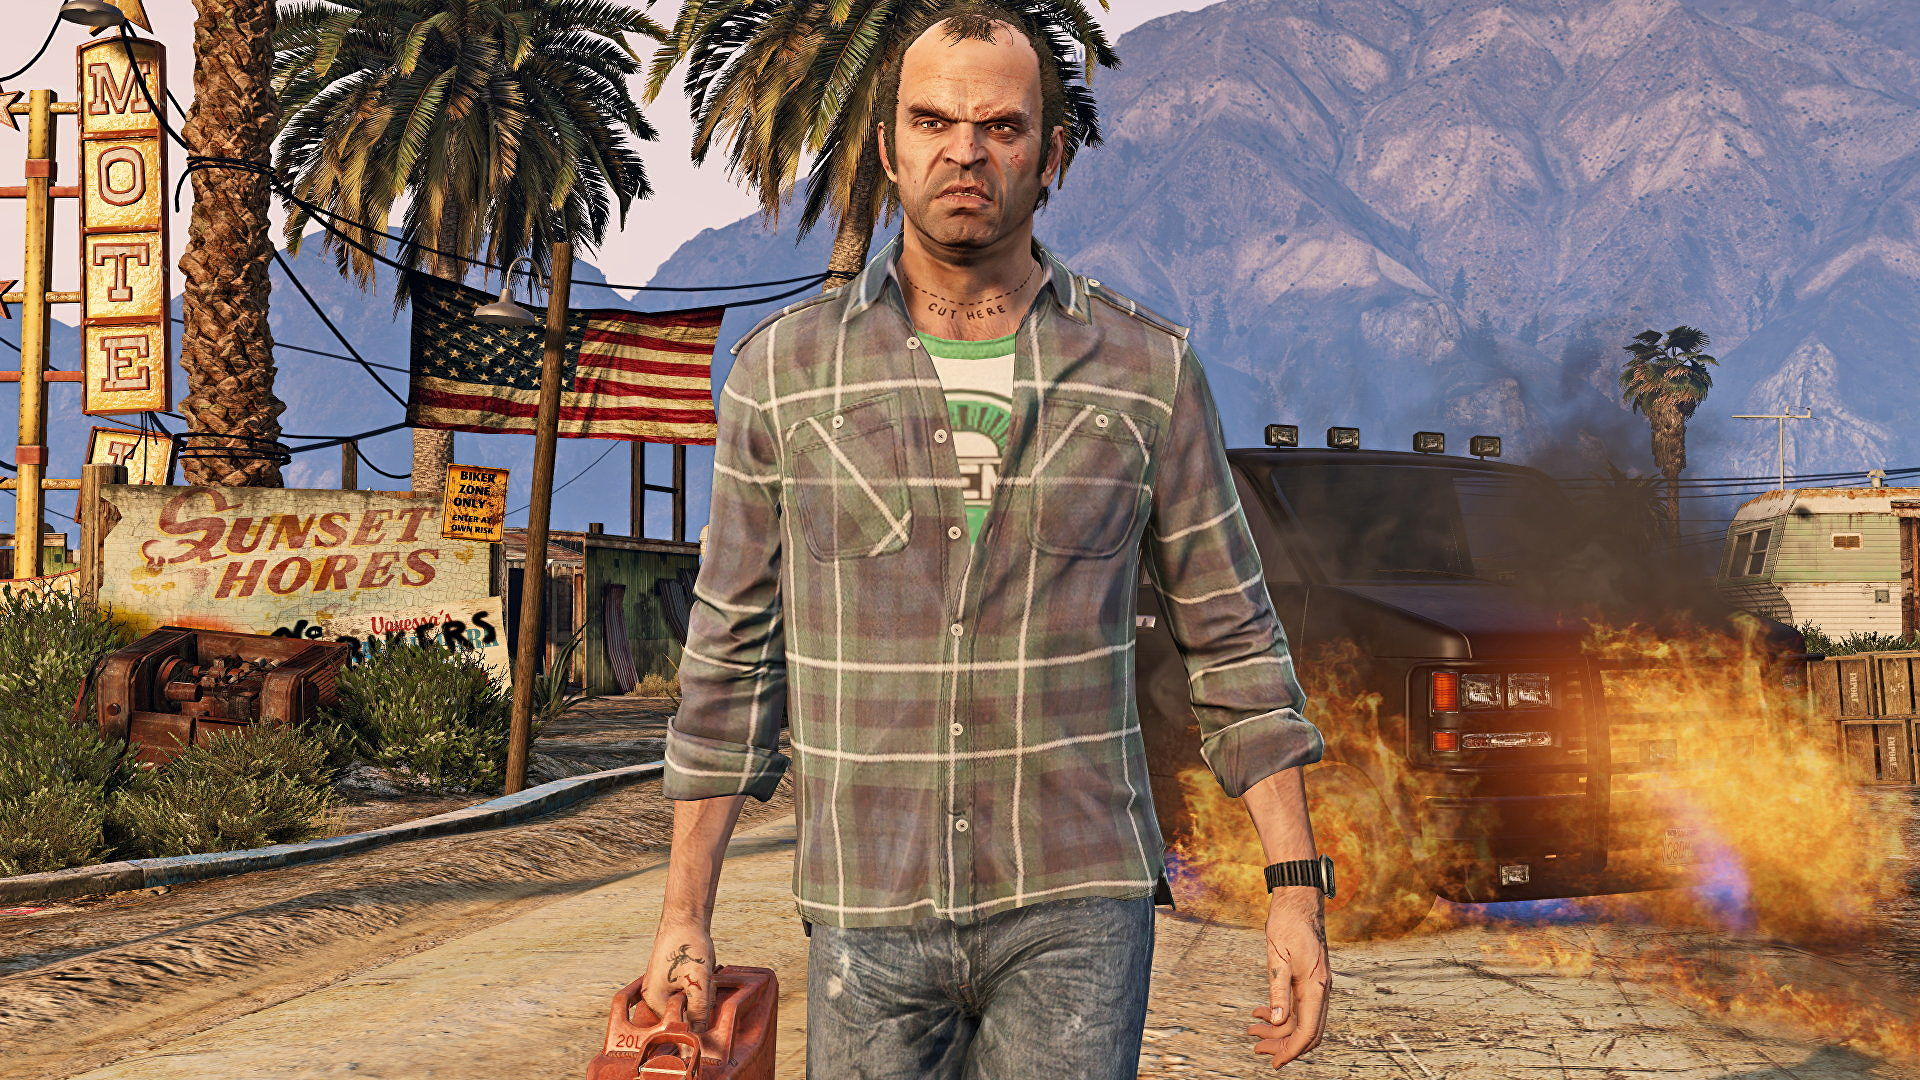 A Steam hiccup pulled Rockstar's games, then briefly brought back Midnight Club 2